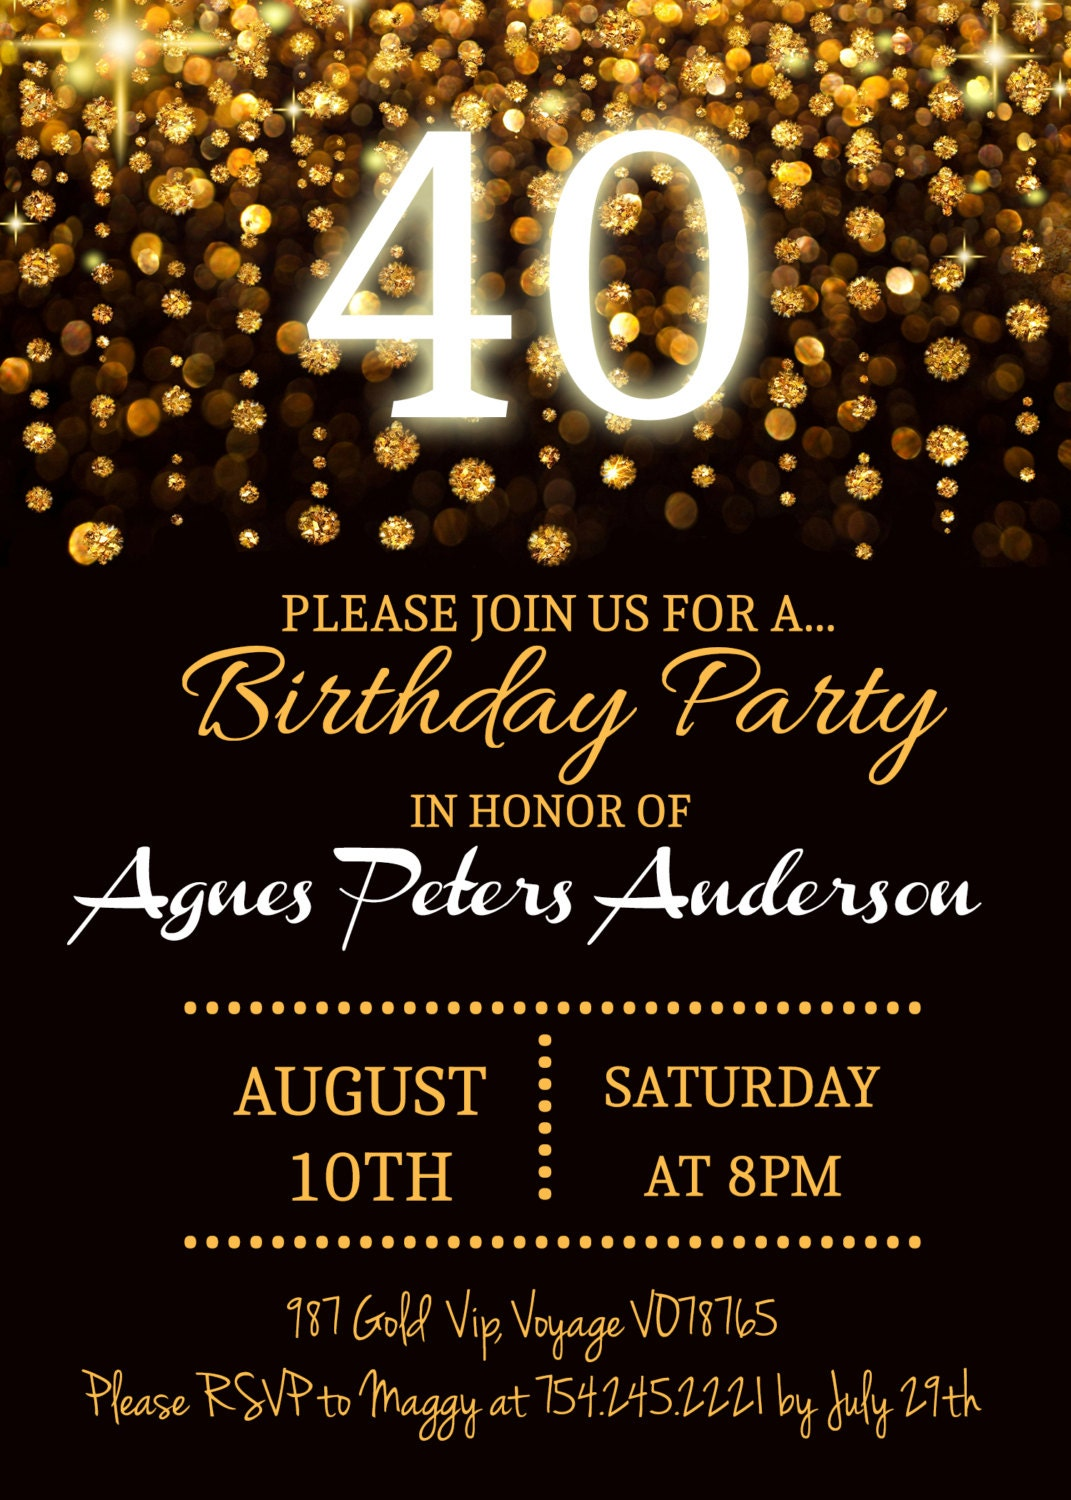 Elegant Golden Birthday Invitation 40 50 60 70 80 Chic – Golden Birthday Invitation